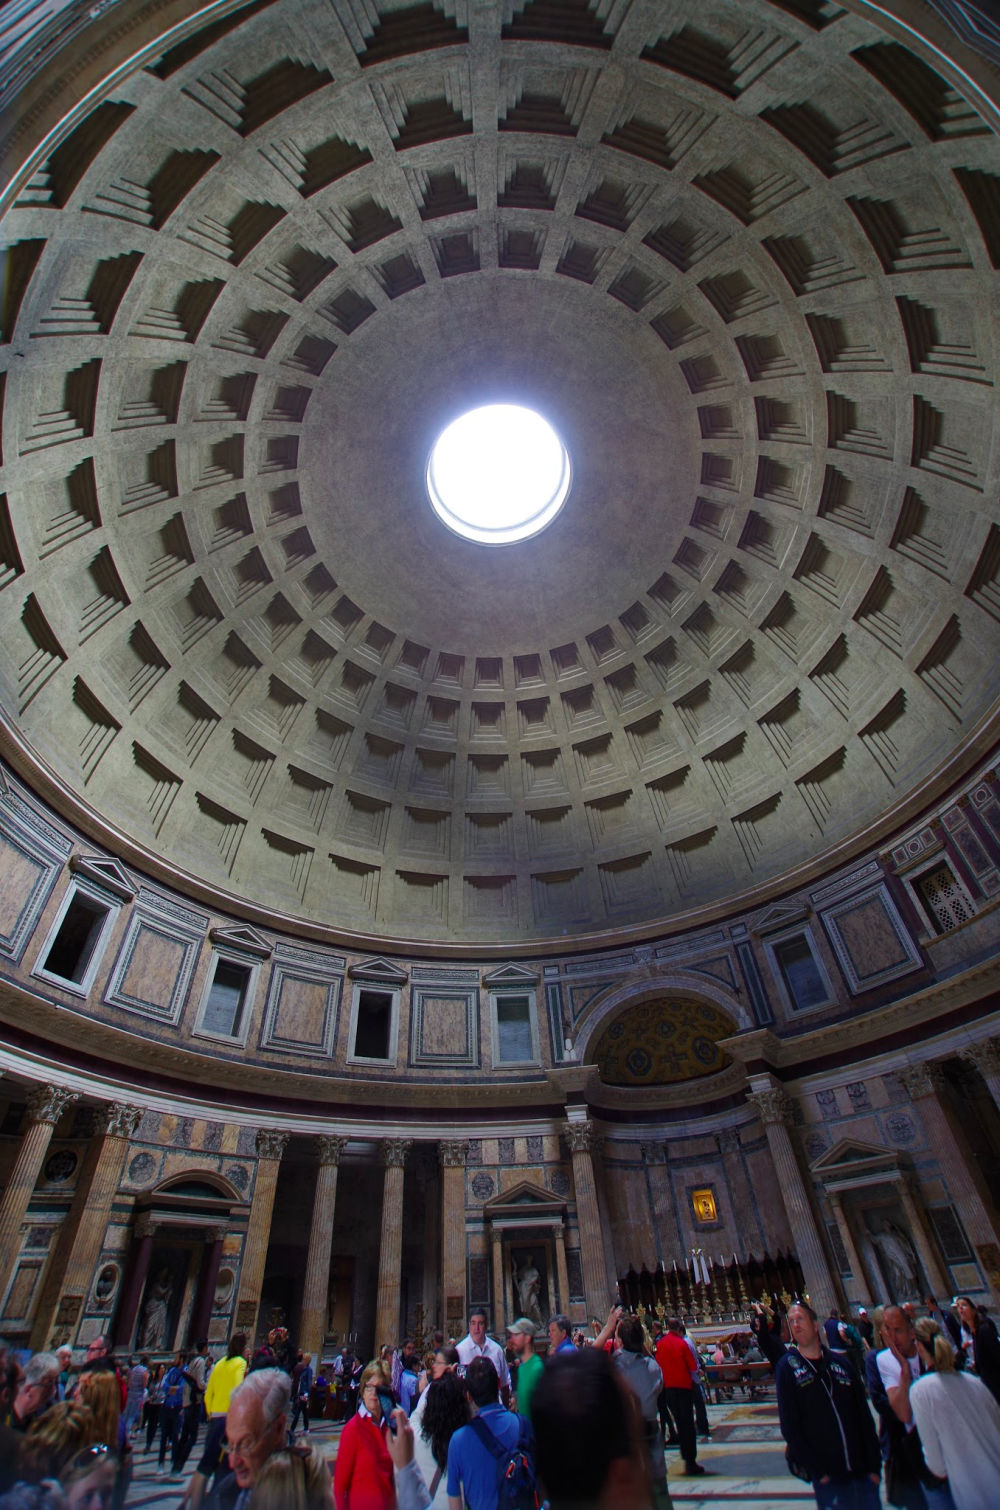 architecture-historical-pantheon-105948(1).jpg